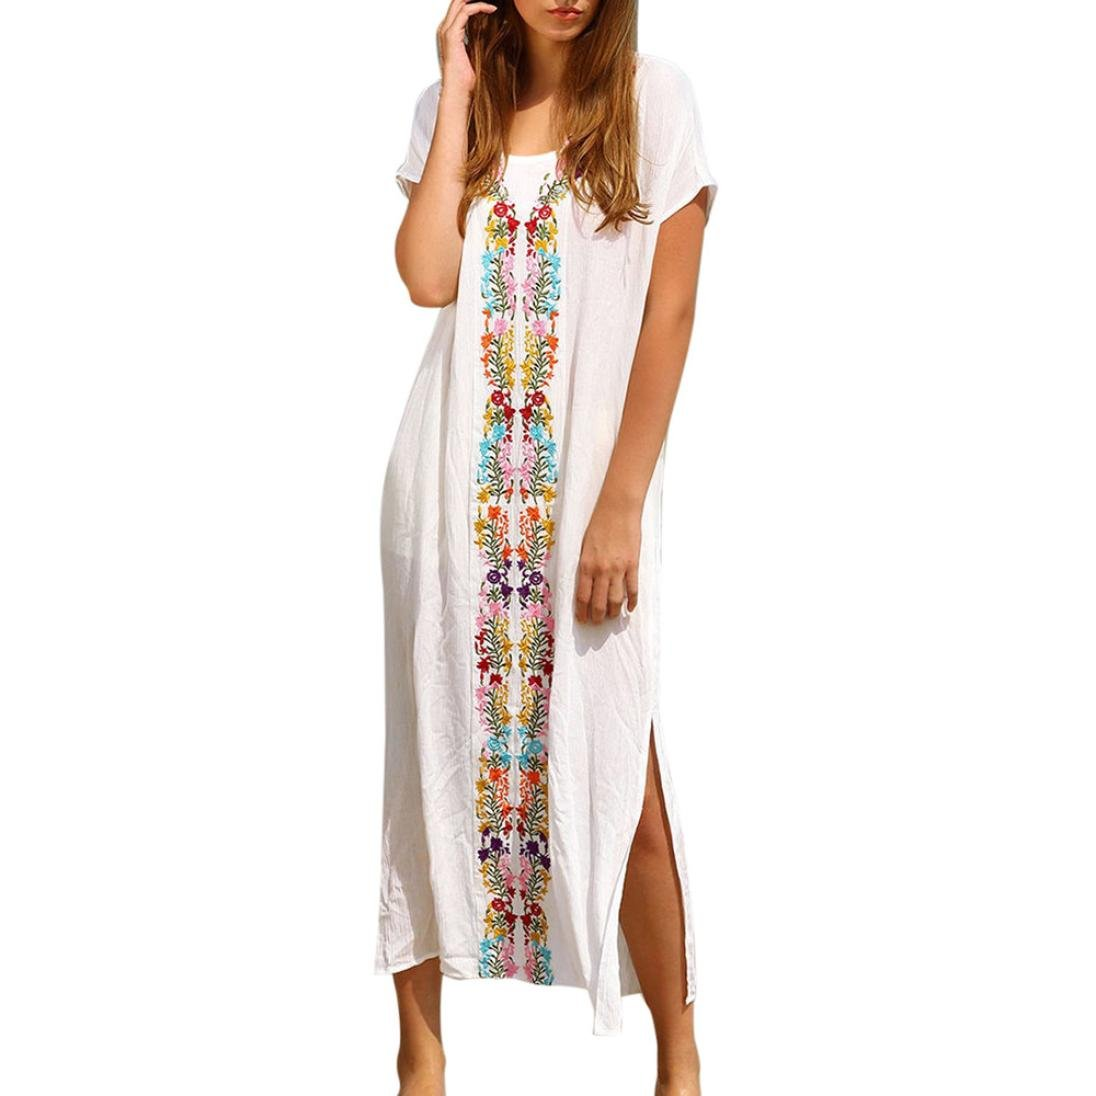 799b671e19 Brezeh Beach Cover Up Women Summer Beach Maxi Dress Boho Short Sleeve Kaftan  Swimwear Beachwear Embroidered Bikini Cover Up Plus Size Casual Long Dress  ...